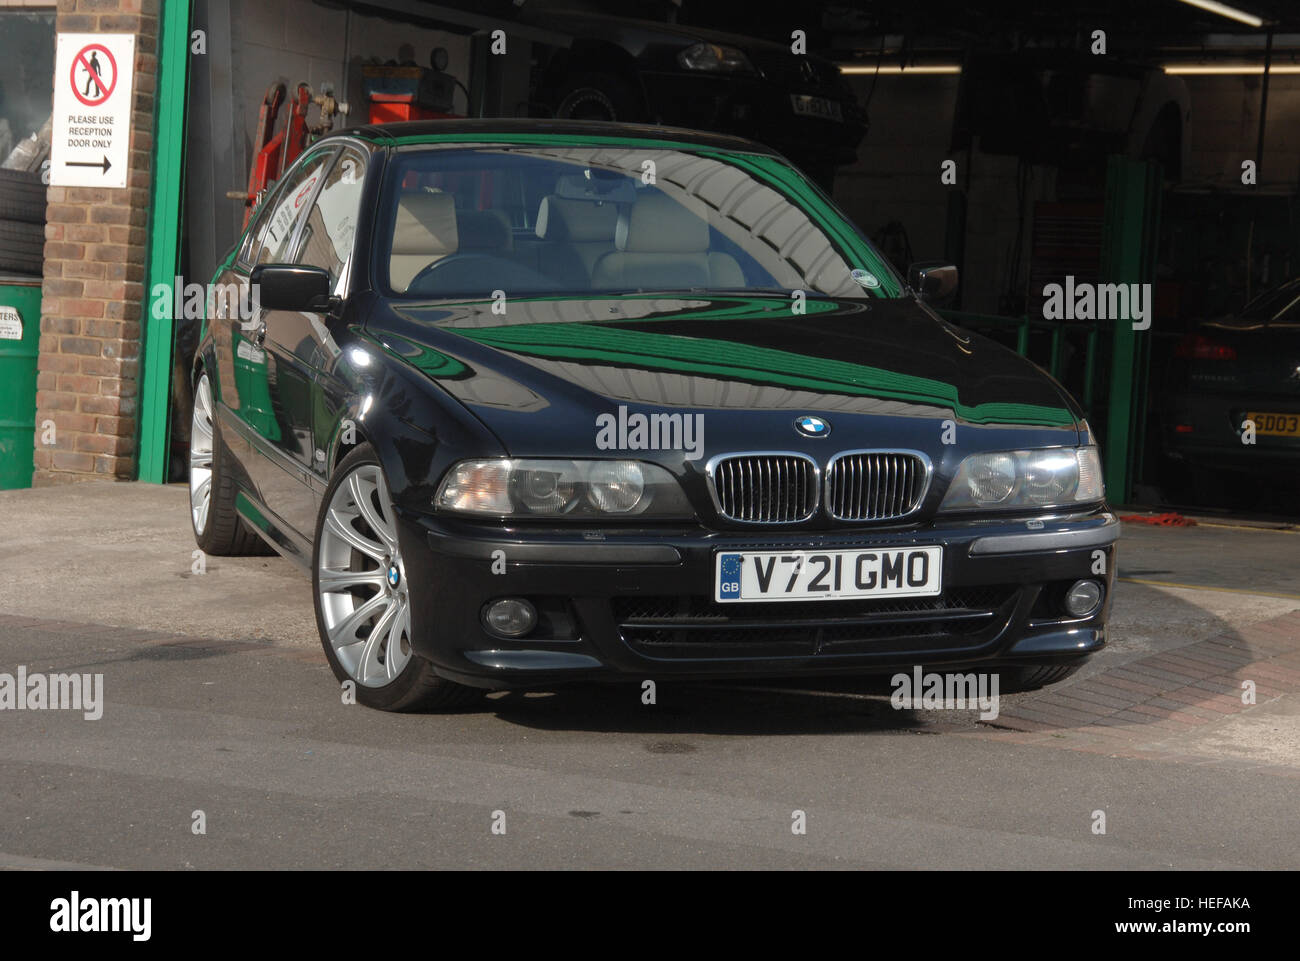 1989 Bmw E39 5 Series Saloon Young Timer Modern Classic Car Stock